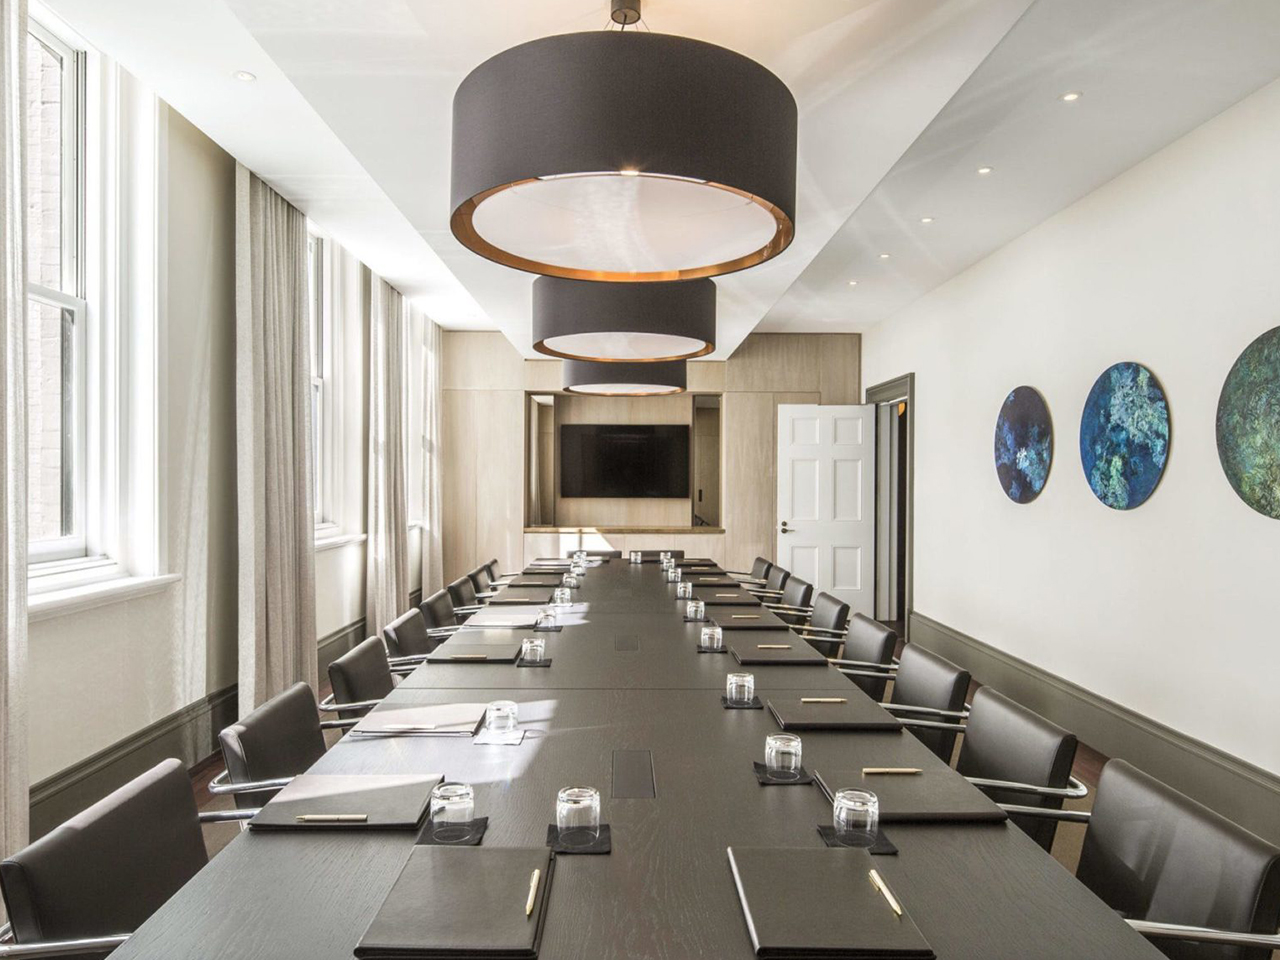 Chairs And Table Inside The Boardroom With Big Round Hanging Lights, Glass Windows And Round Wall Arts